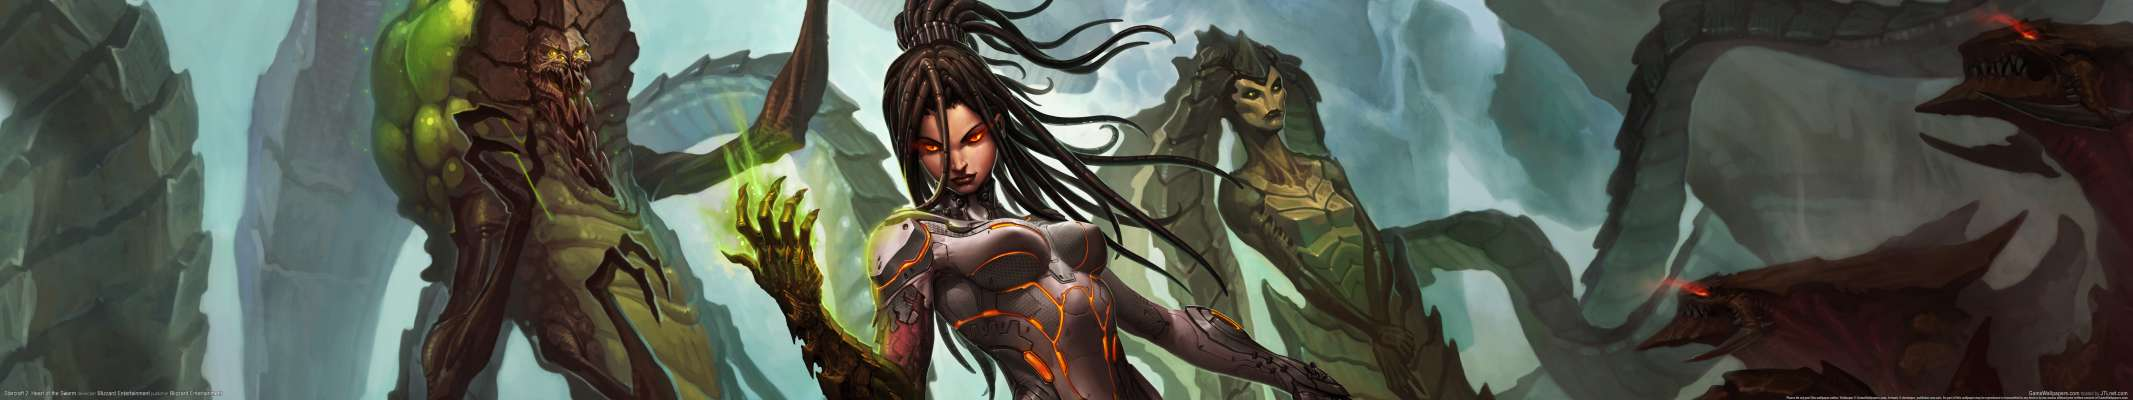 StarCraft 2: Heart of the Swarm triple screen fondo de escritorio